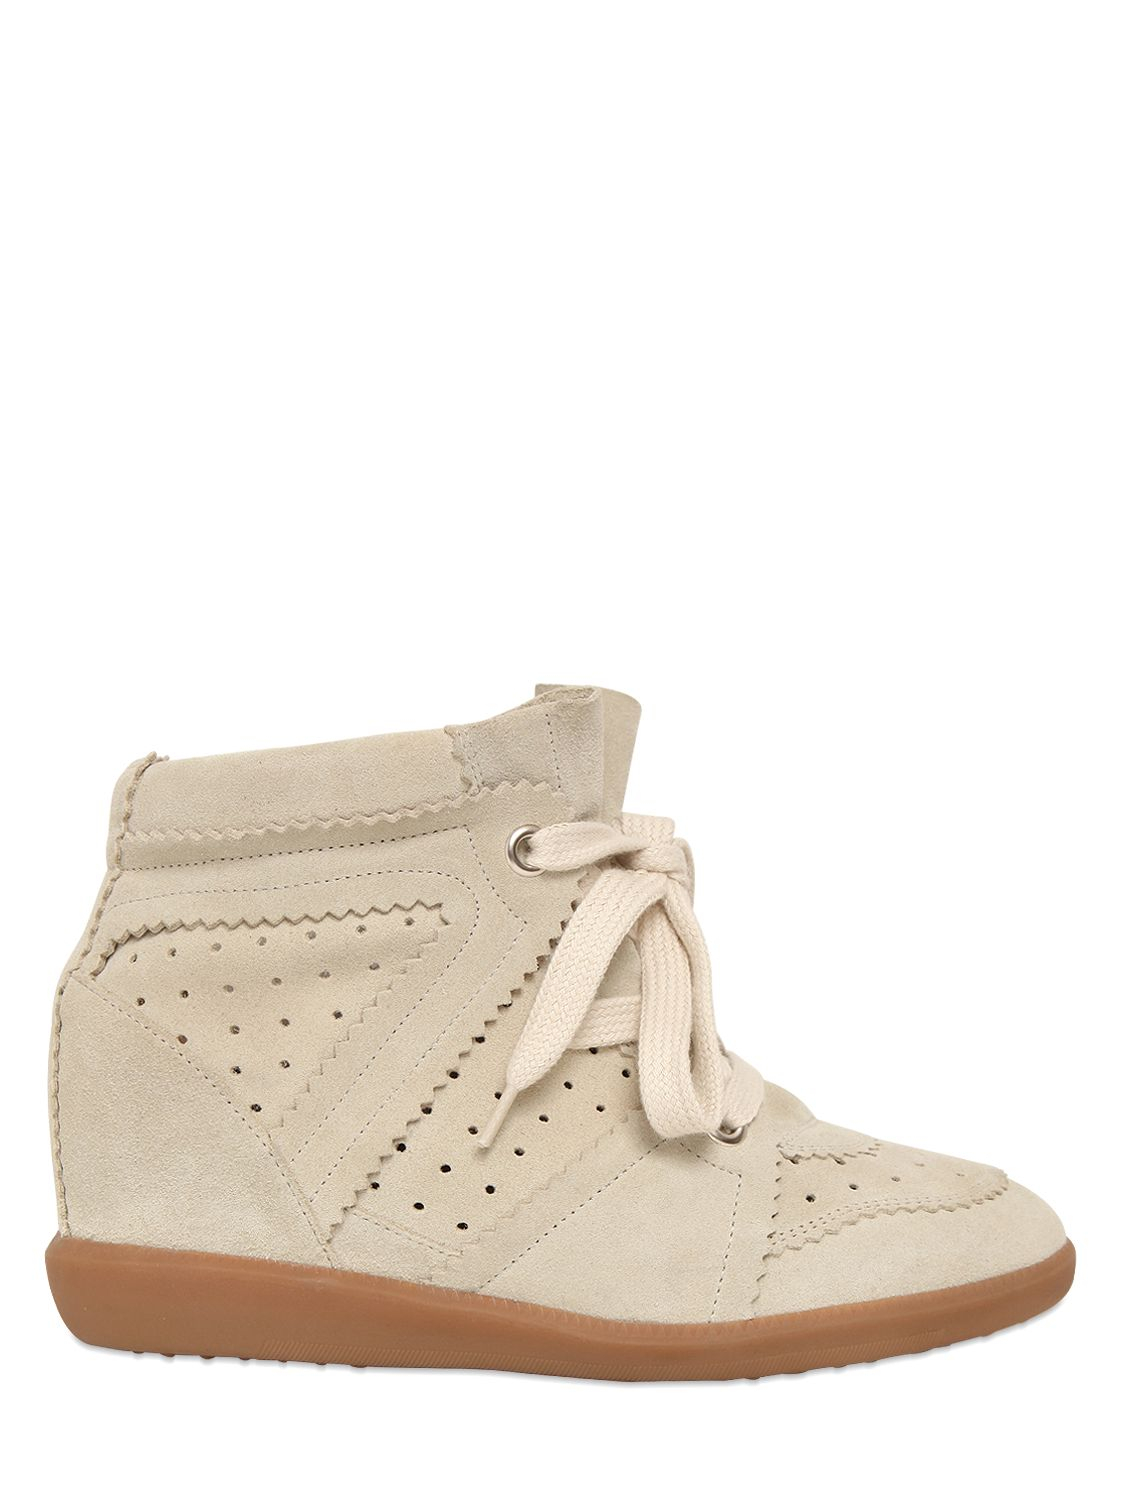 3f0b7e967f48 Gallery. Previously sold at  LUISA VIA ROMA · Women s Wedge Trainers Women s  Isabel Marant Bobby ...